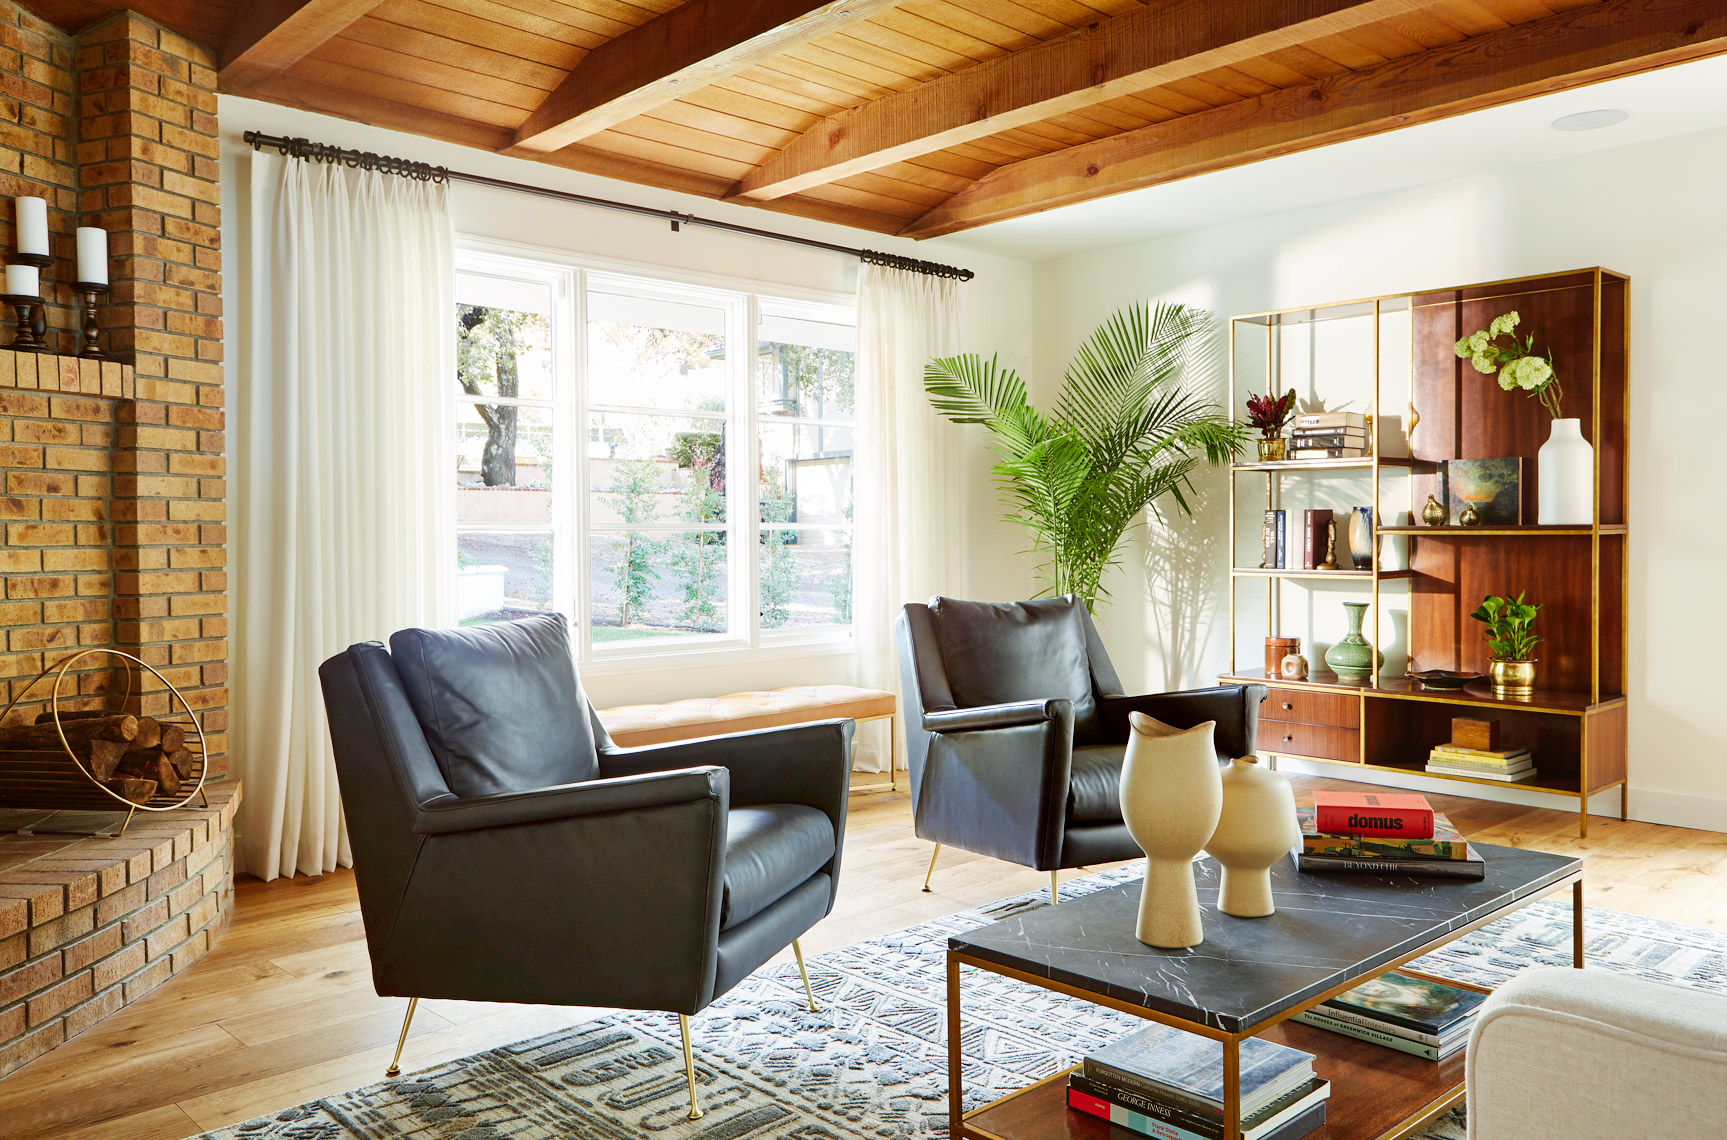 Lily_Spindle_Pasadena_Living_Room_2_028